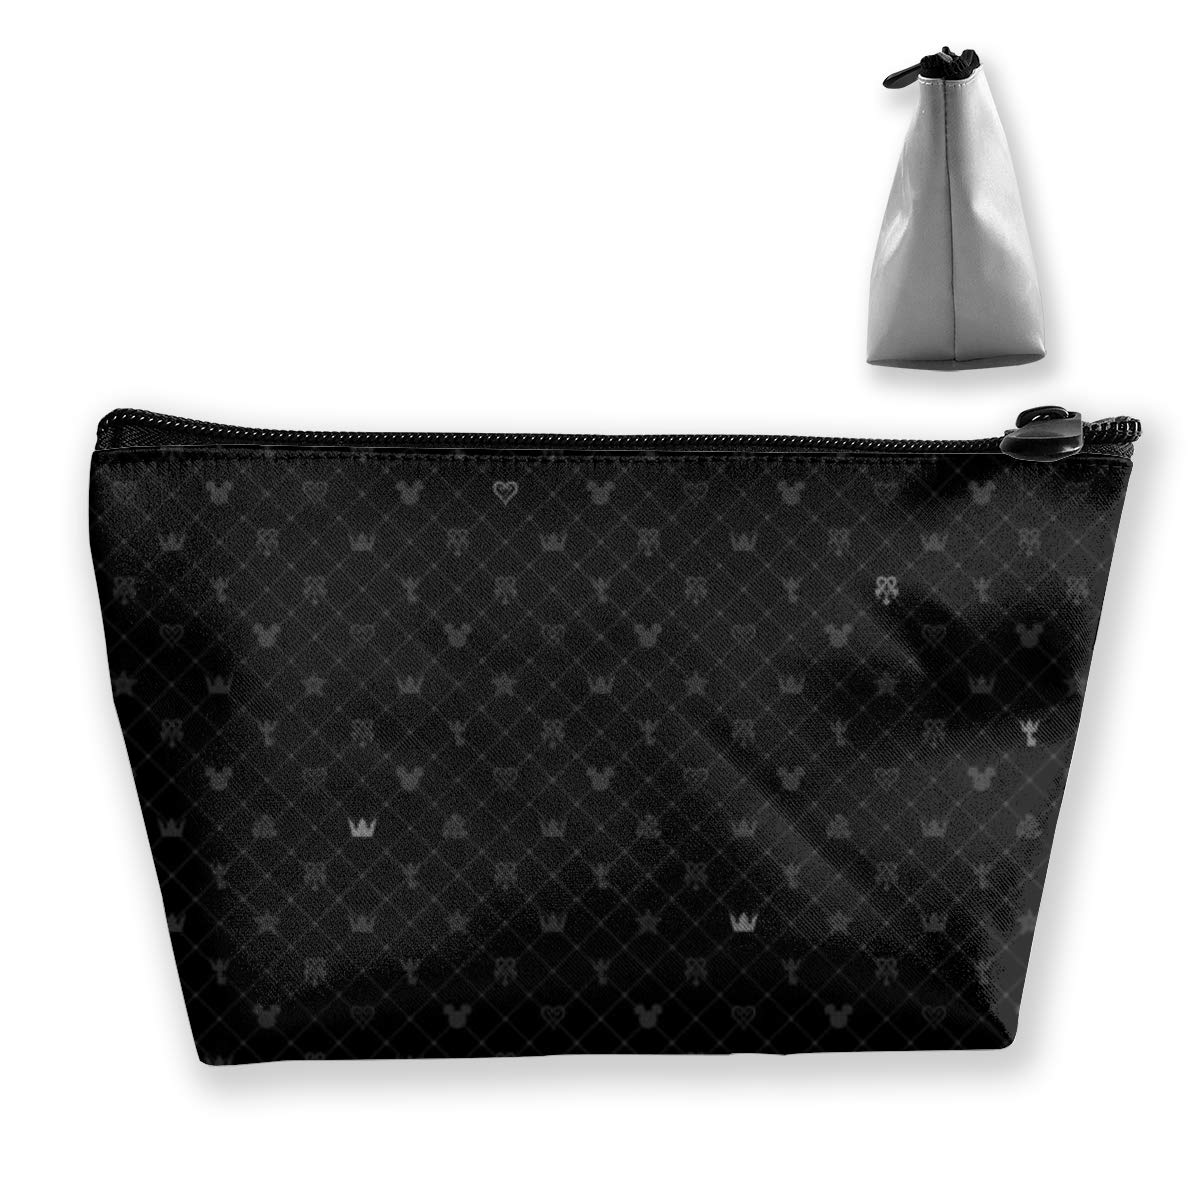 Women Kingdom Hearts Black Pattern Toiletry Bag Holder Multifunction Travel Makeup Train Case Lazy Zipper Tote Bag Large Capacity for Toiletry Digital Accessories Travel